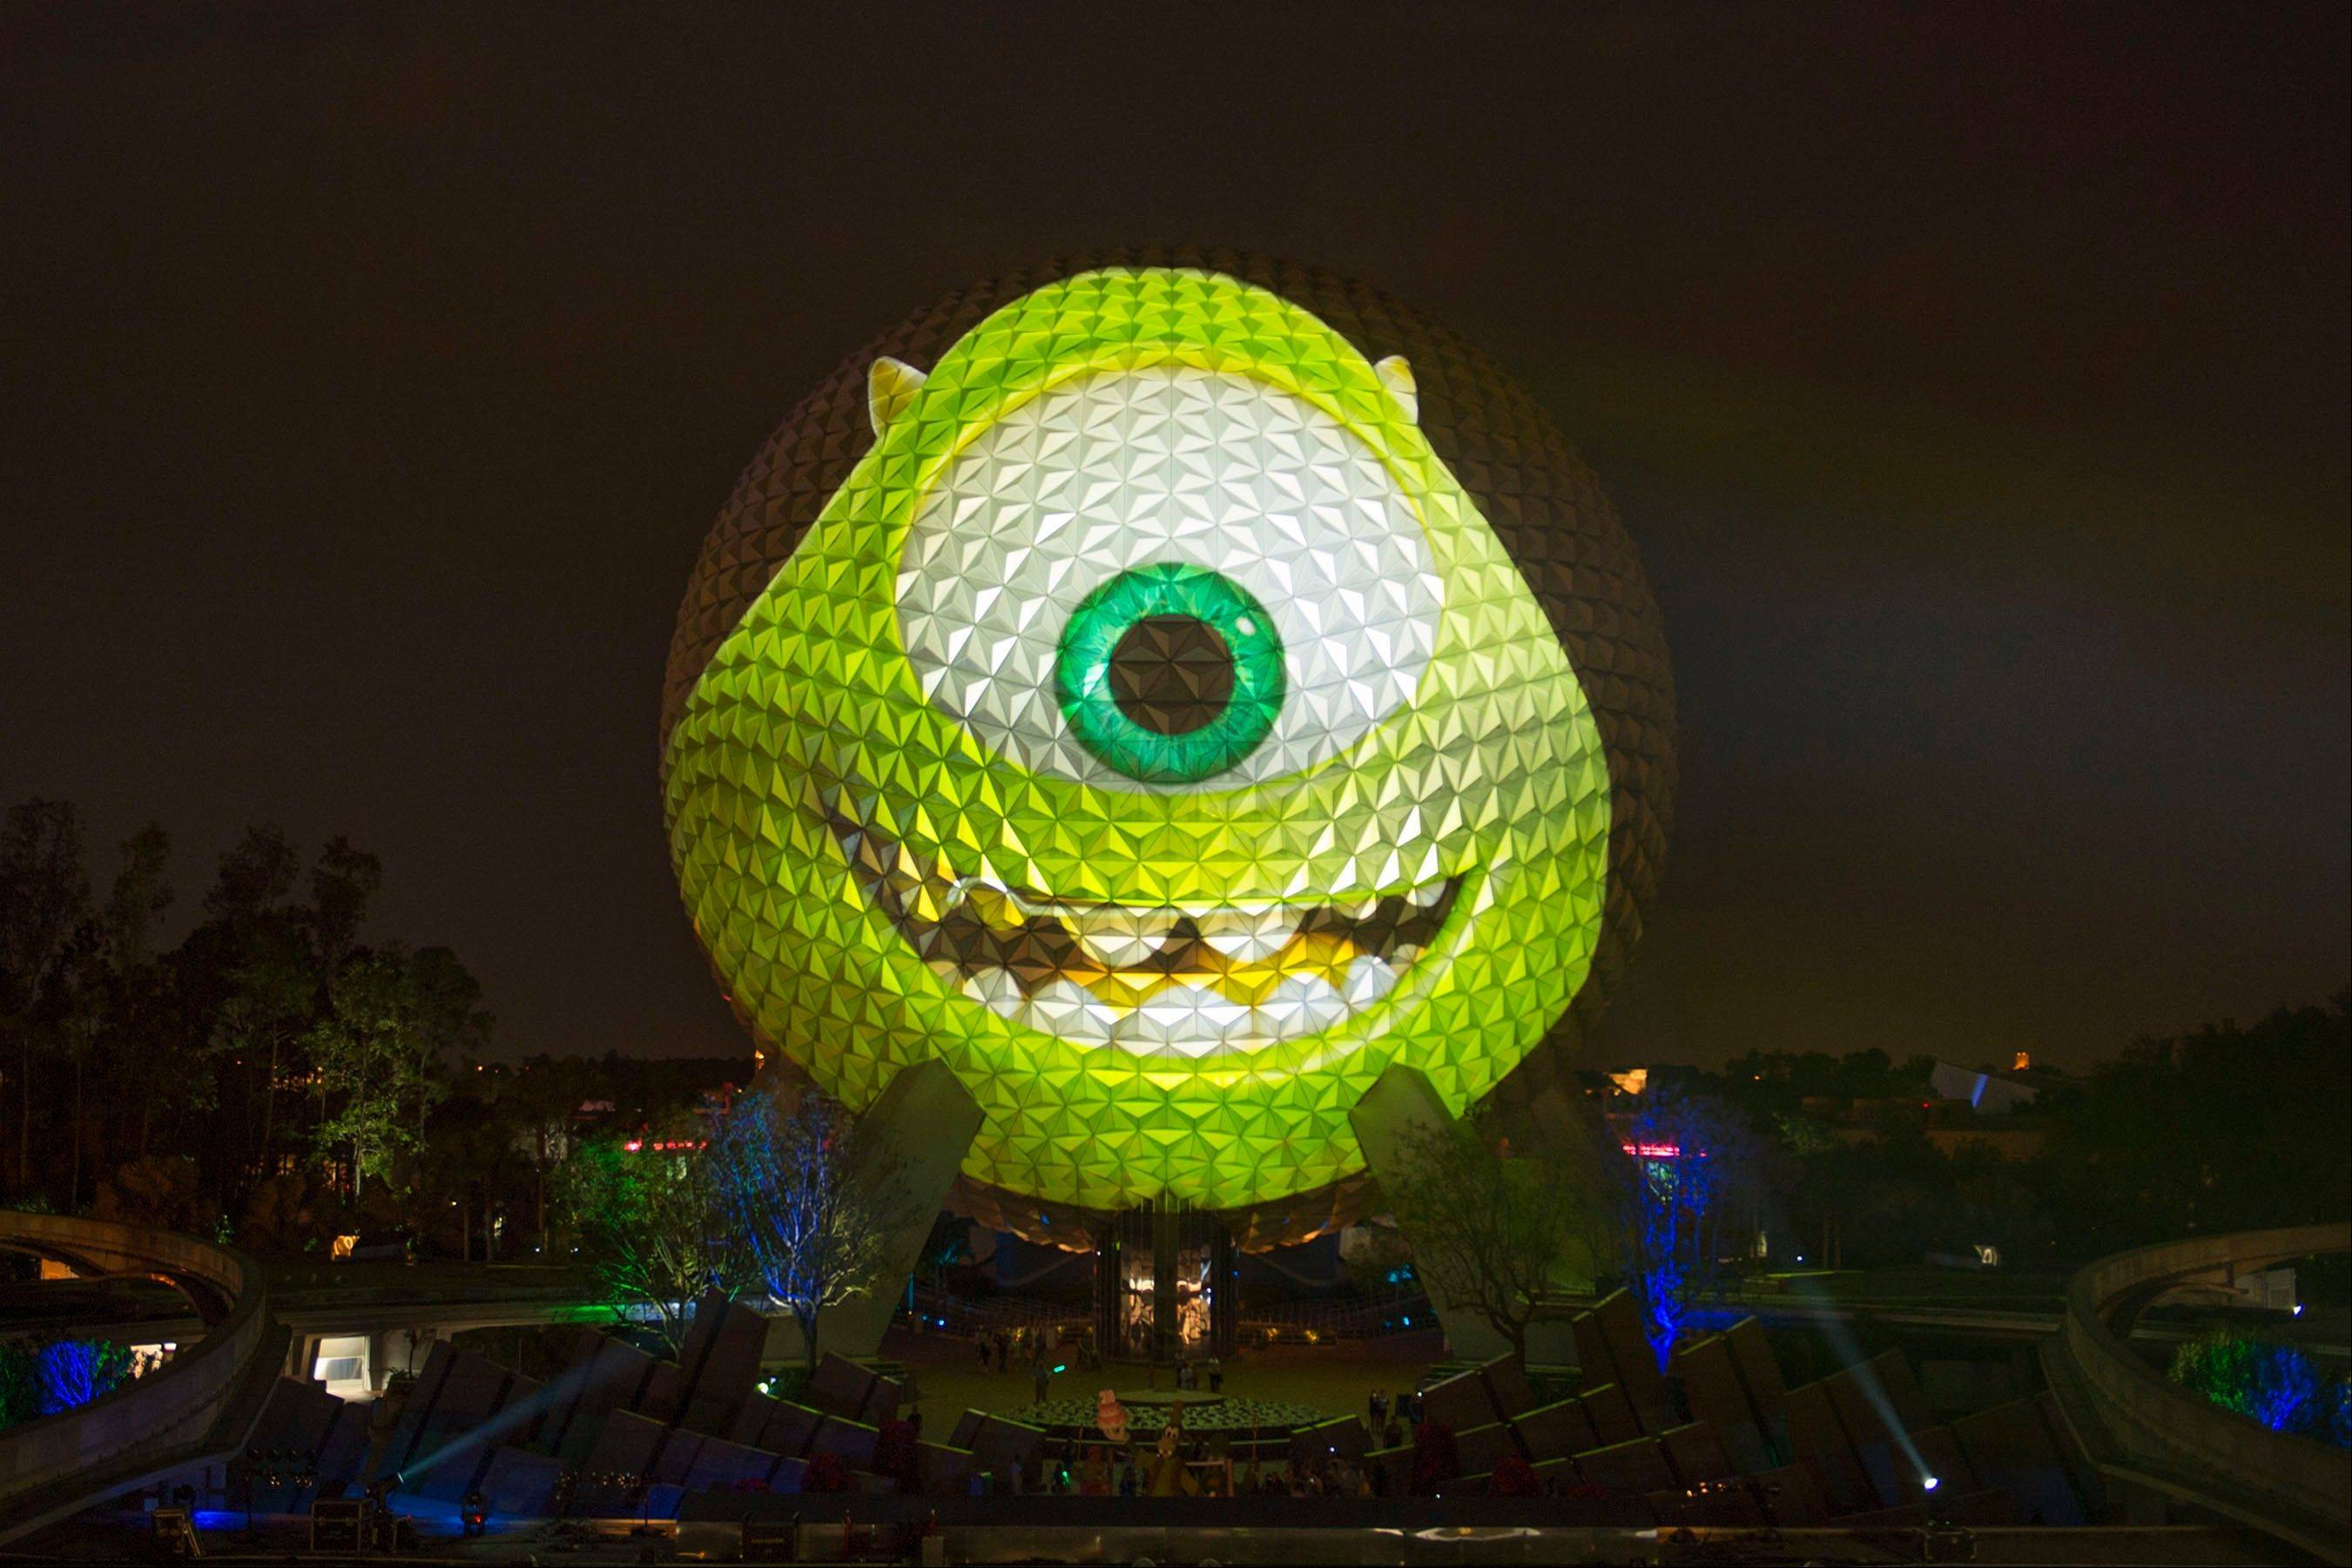 "The image of Mike Wazowski, a character from the upcoming Disney-Pixar animated film ""Monsters University,"" is projected on the exterior of the Spaceship Earth attraction at Epcot in Lake Buena Vista, Fla."